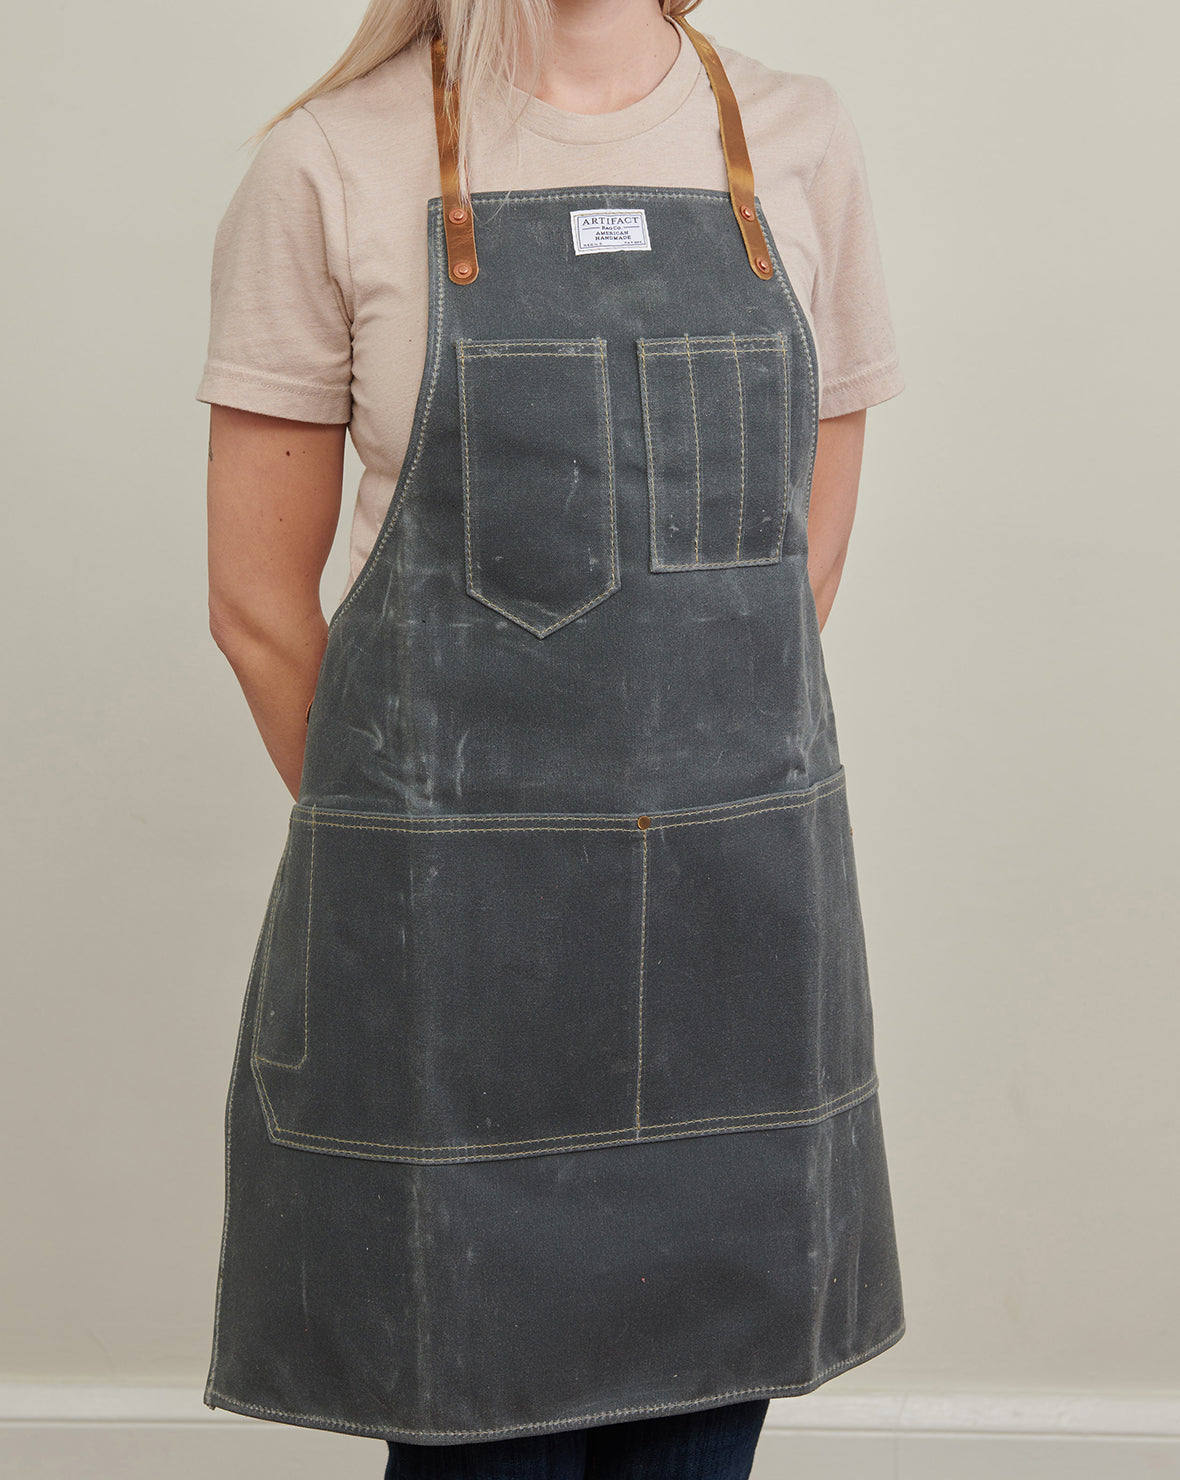 Wax Canvas Artisan w/ Leather Y-Strap - Artifact Aprons 3